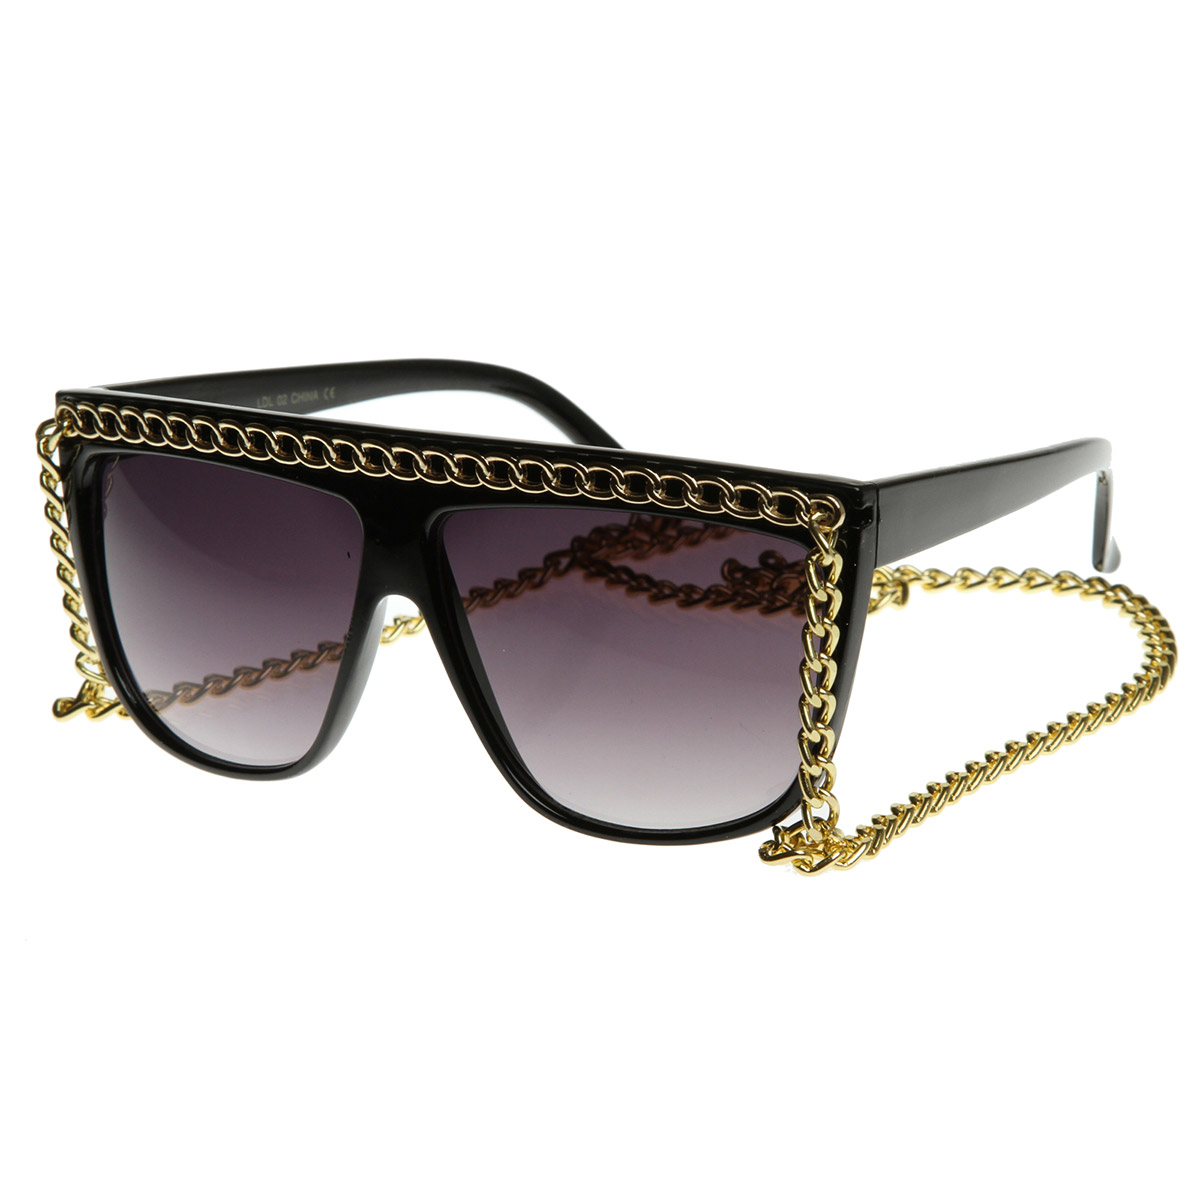 Celebrity-Fab-Chained-Designer-Inspired-Fashion-Glasses-12-Inch-Chain-Sunglasses